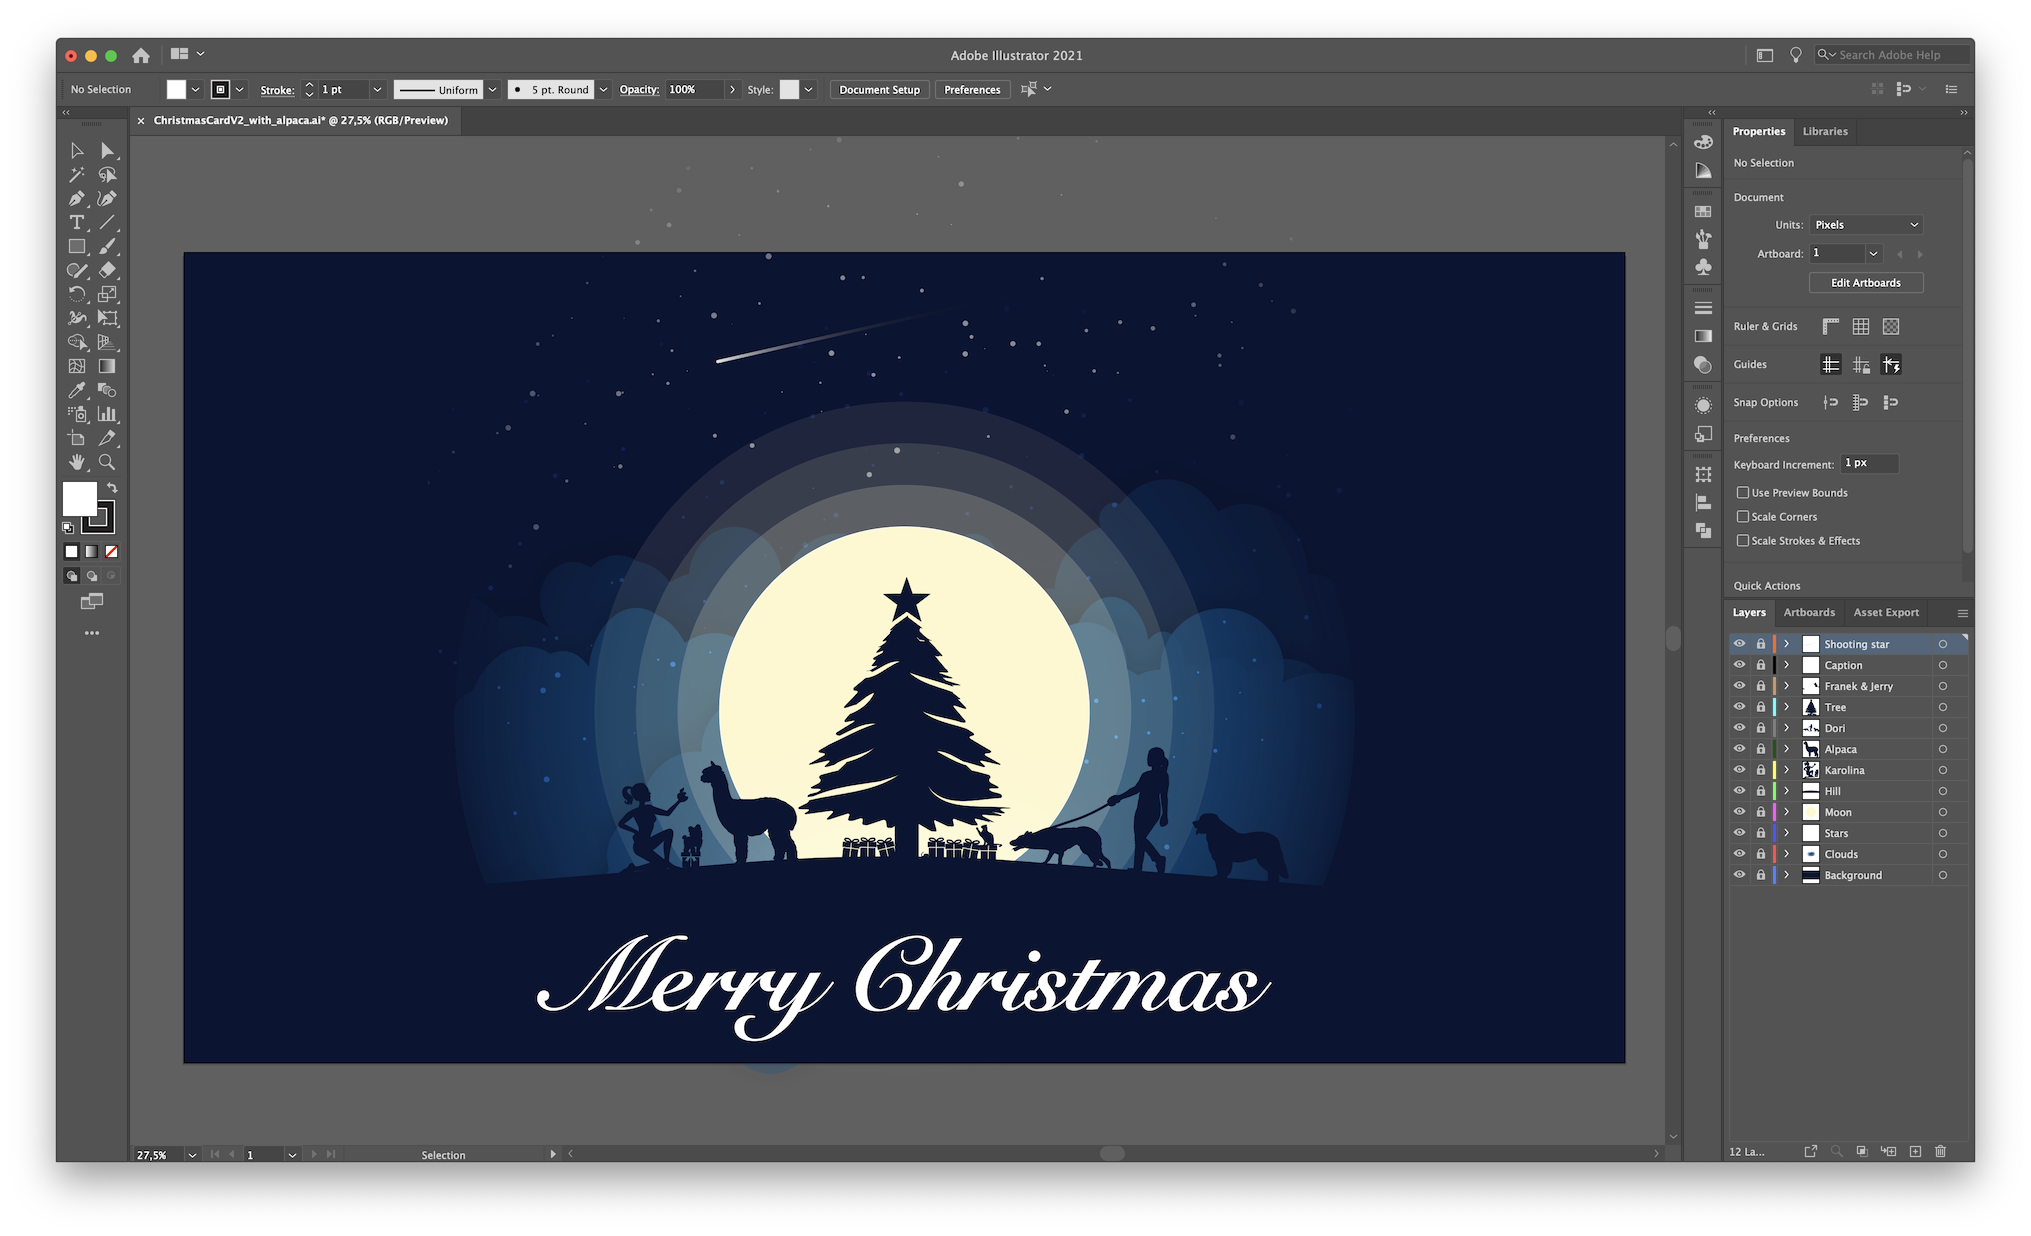 The Christmas Card artwork in Adobe Illustrator